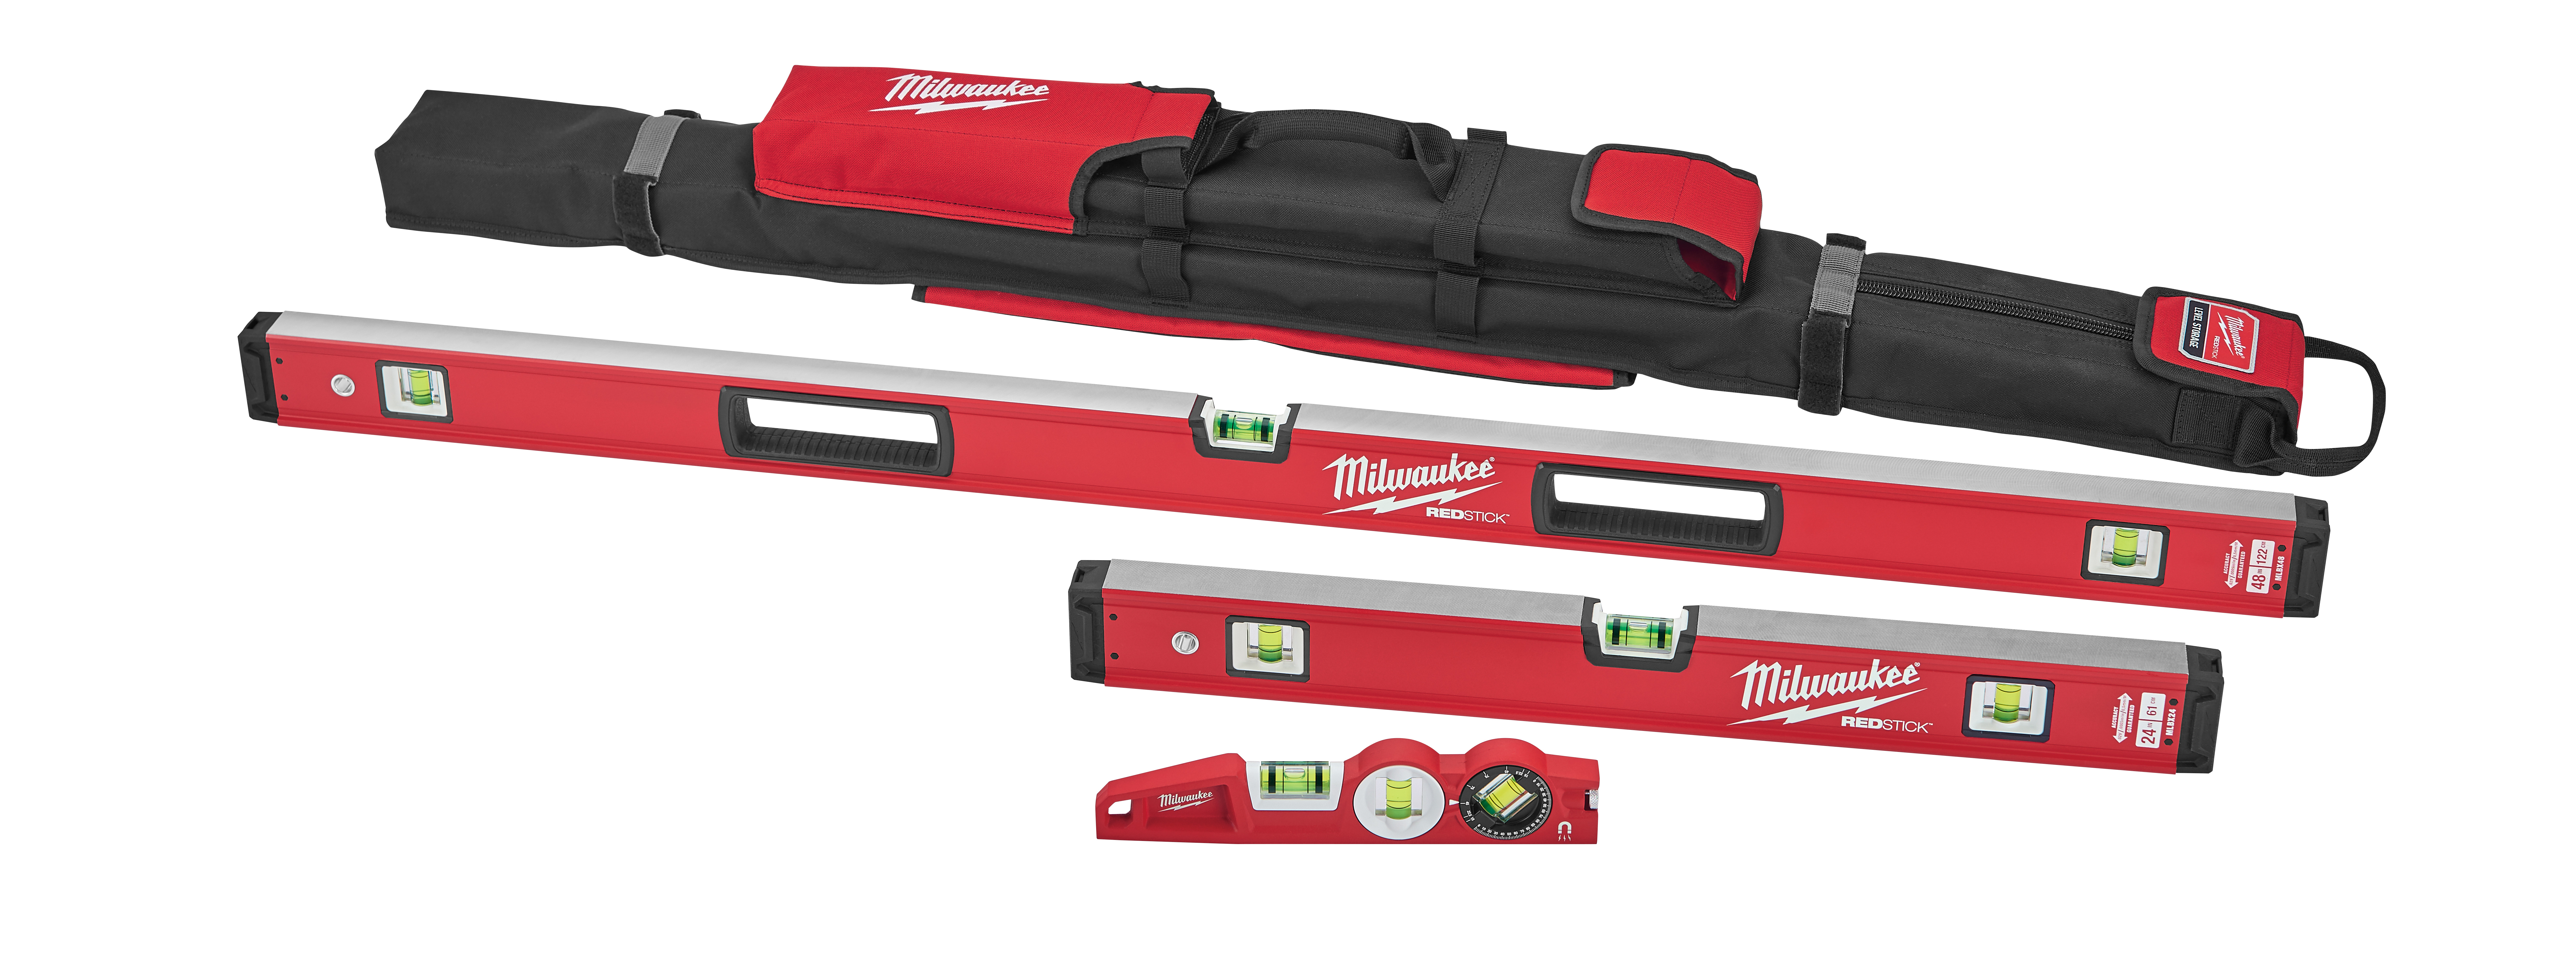 Milwaukee® MLBXC48 Level Starter Set, 10 in, 24 in, 48 in L, 3 Vials, Aluminum, (1) Level, (2) Plumb Vial Position, 0.0005 in Accuracy